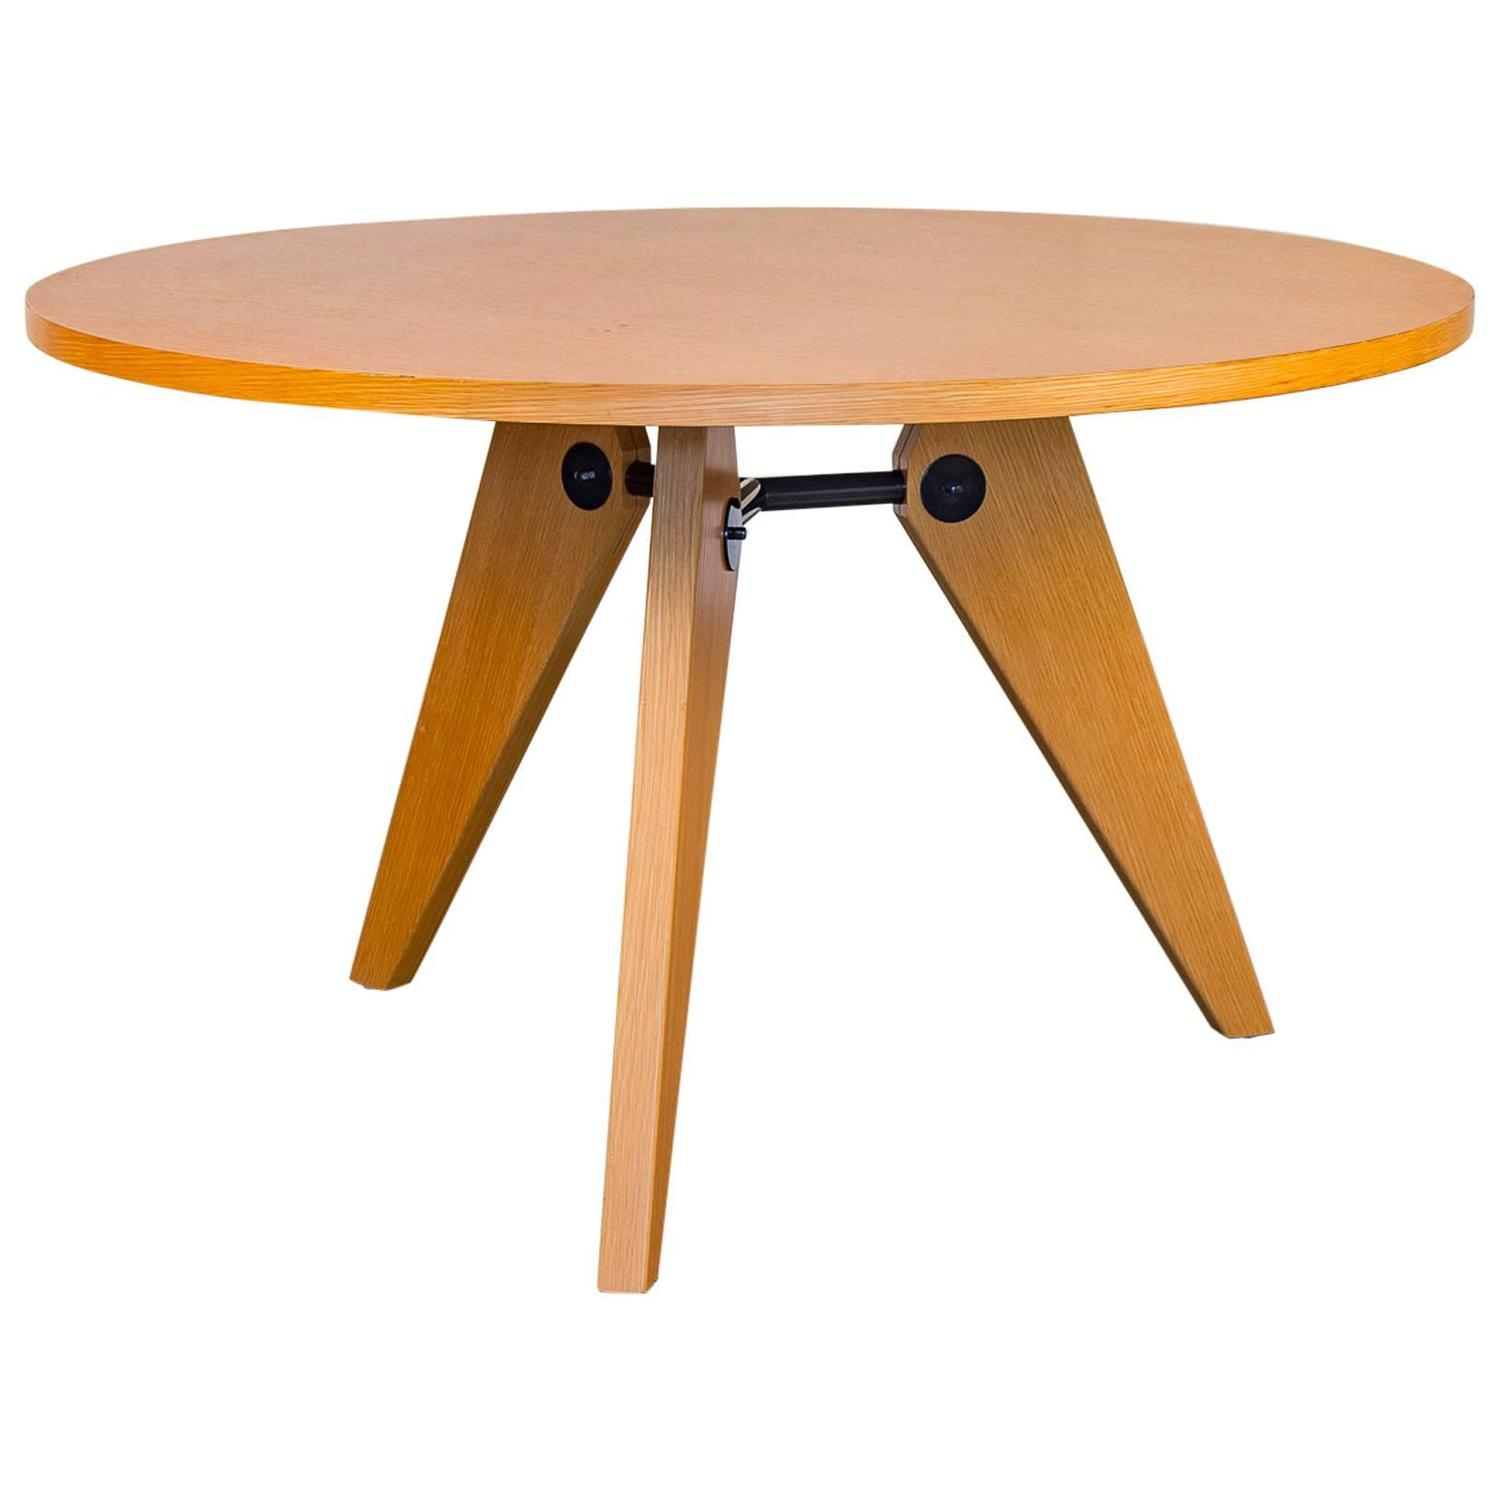 jean prouv gu ridon table for sale at 1stdibs. Black Bedroom Furniture Sets. Home Design Ideas